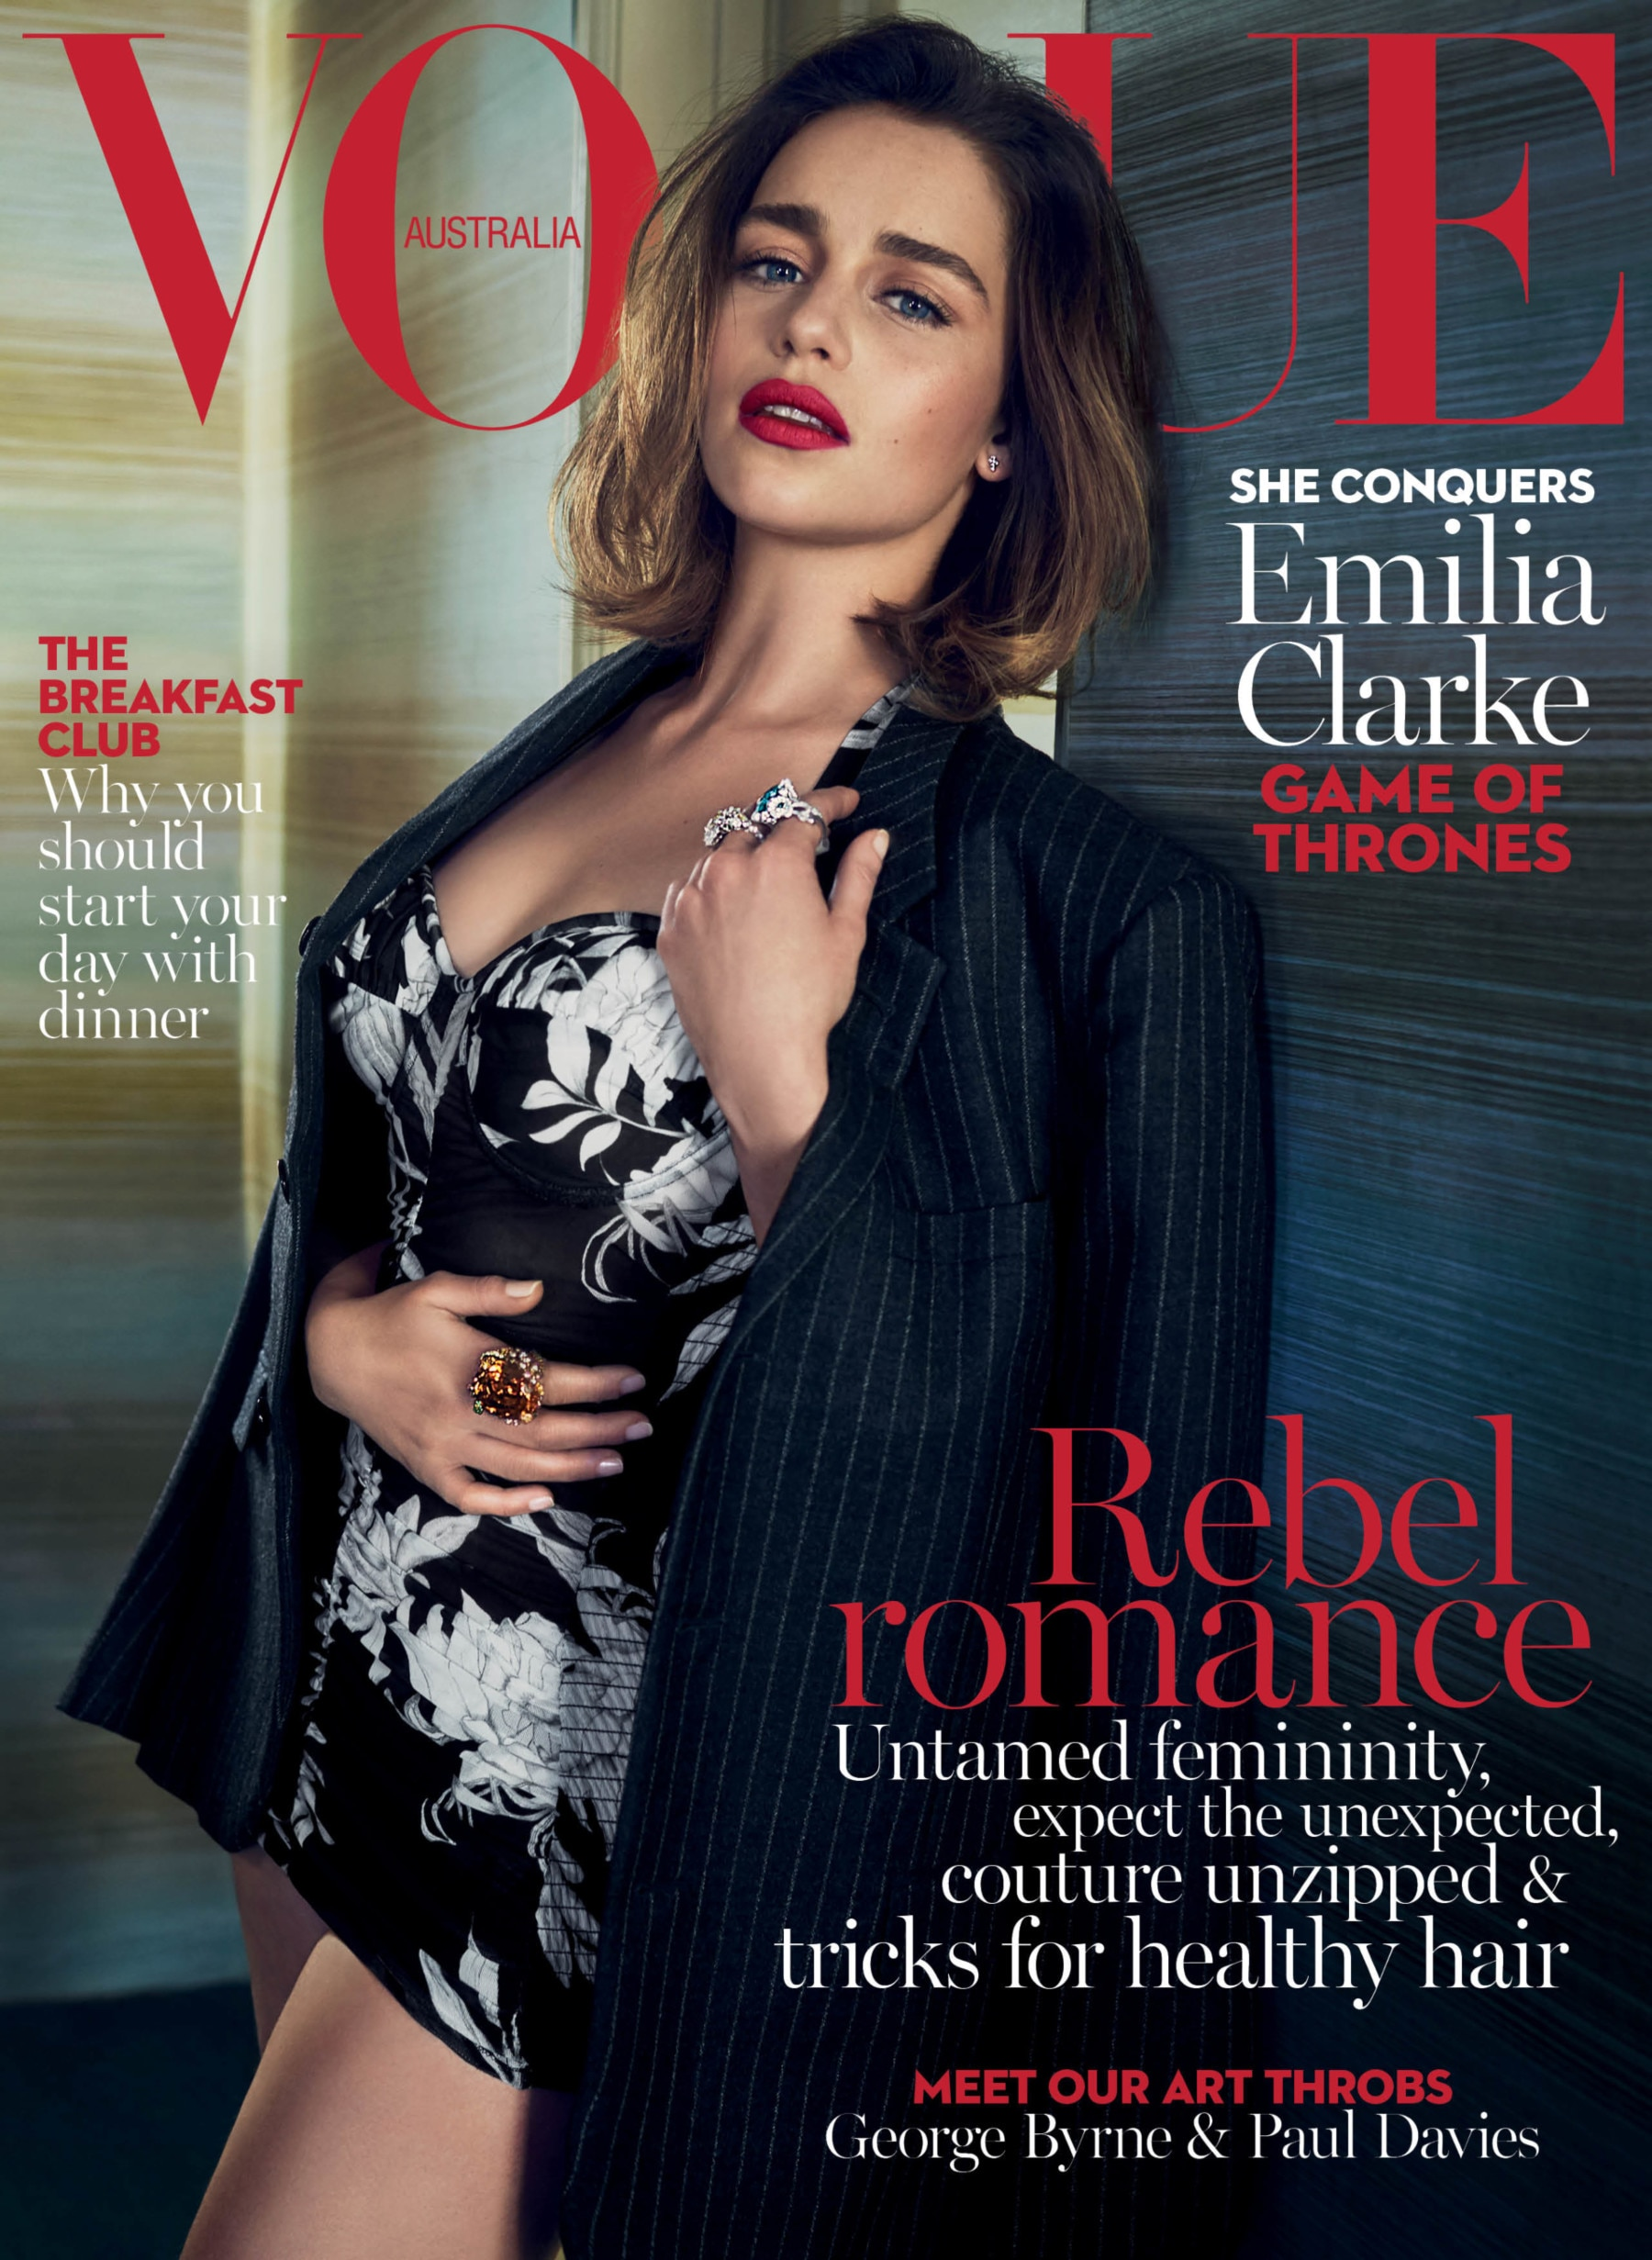 First look: Game of Thrones star Emilia Clarke covers Vogue's May 2016 issue